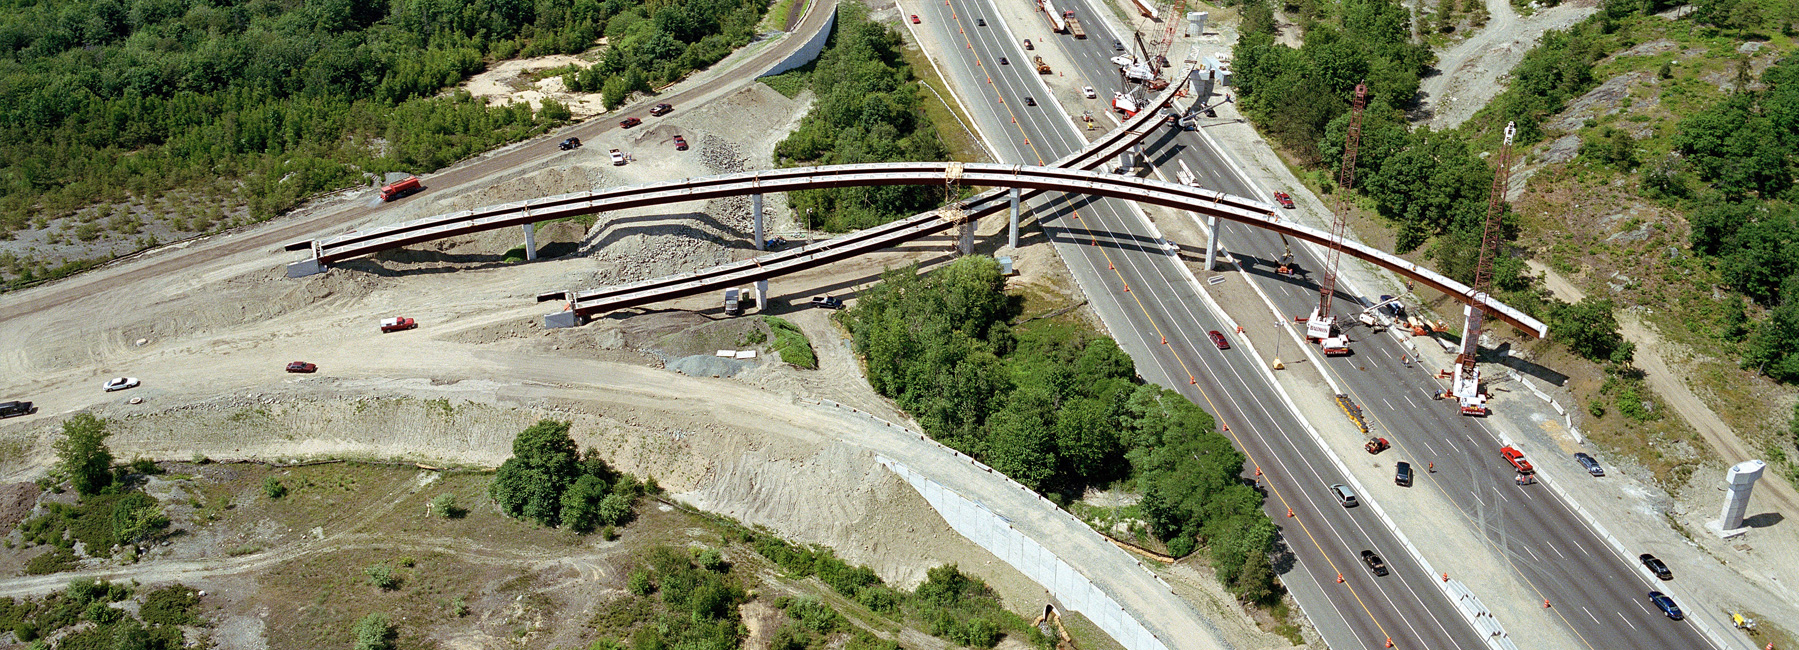 I-93 Interchange | Woburn, MA